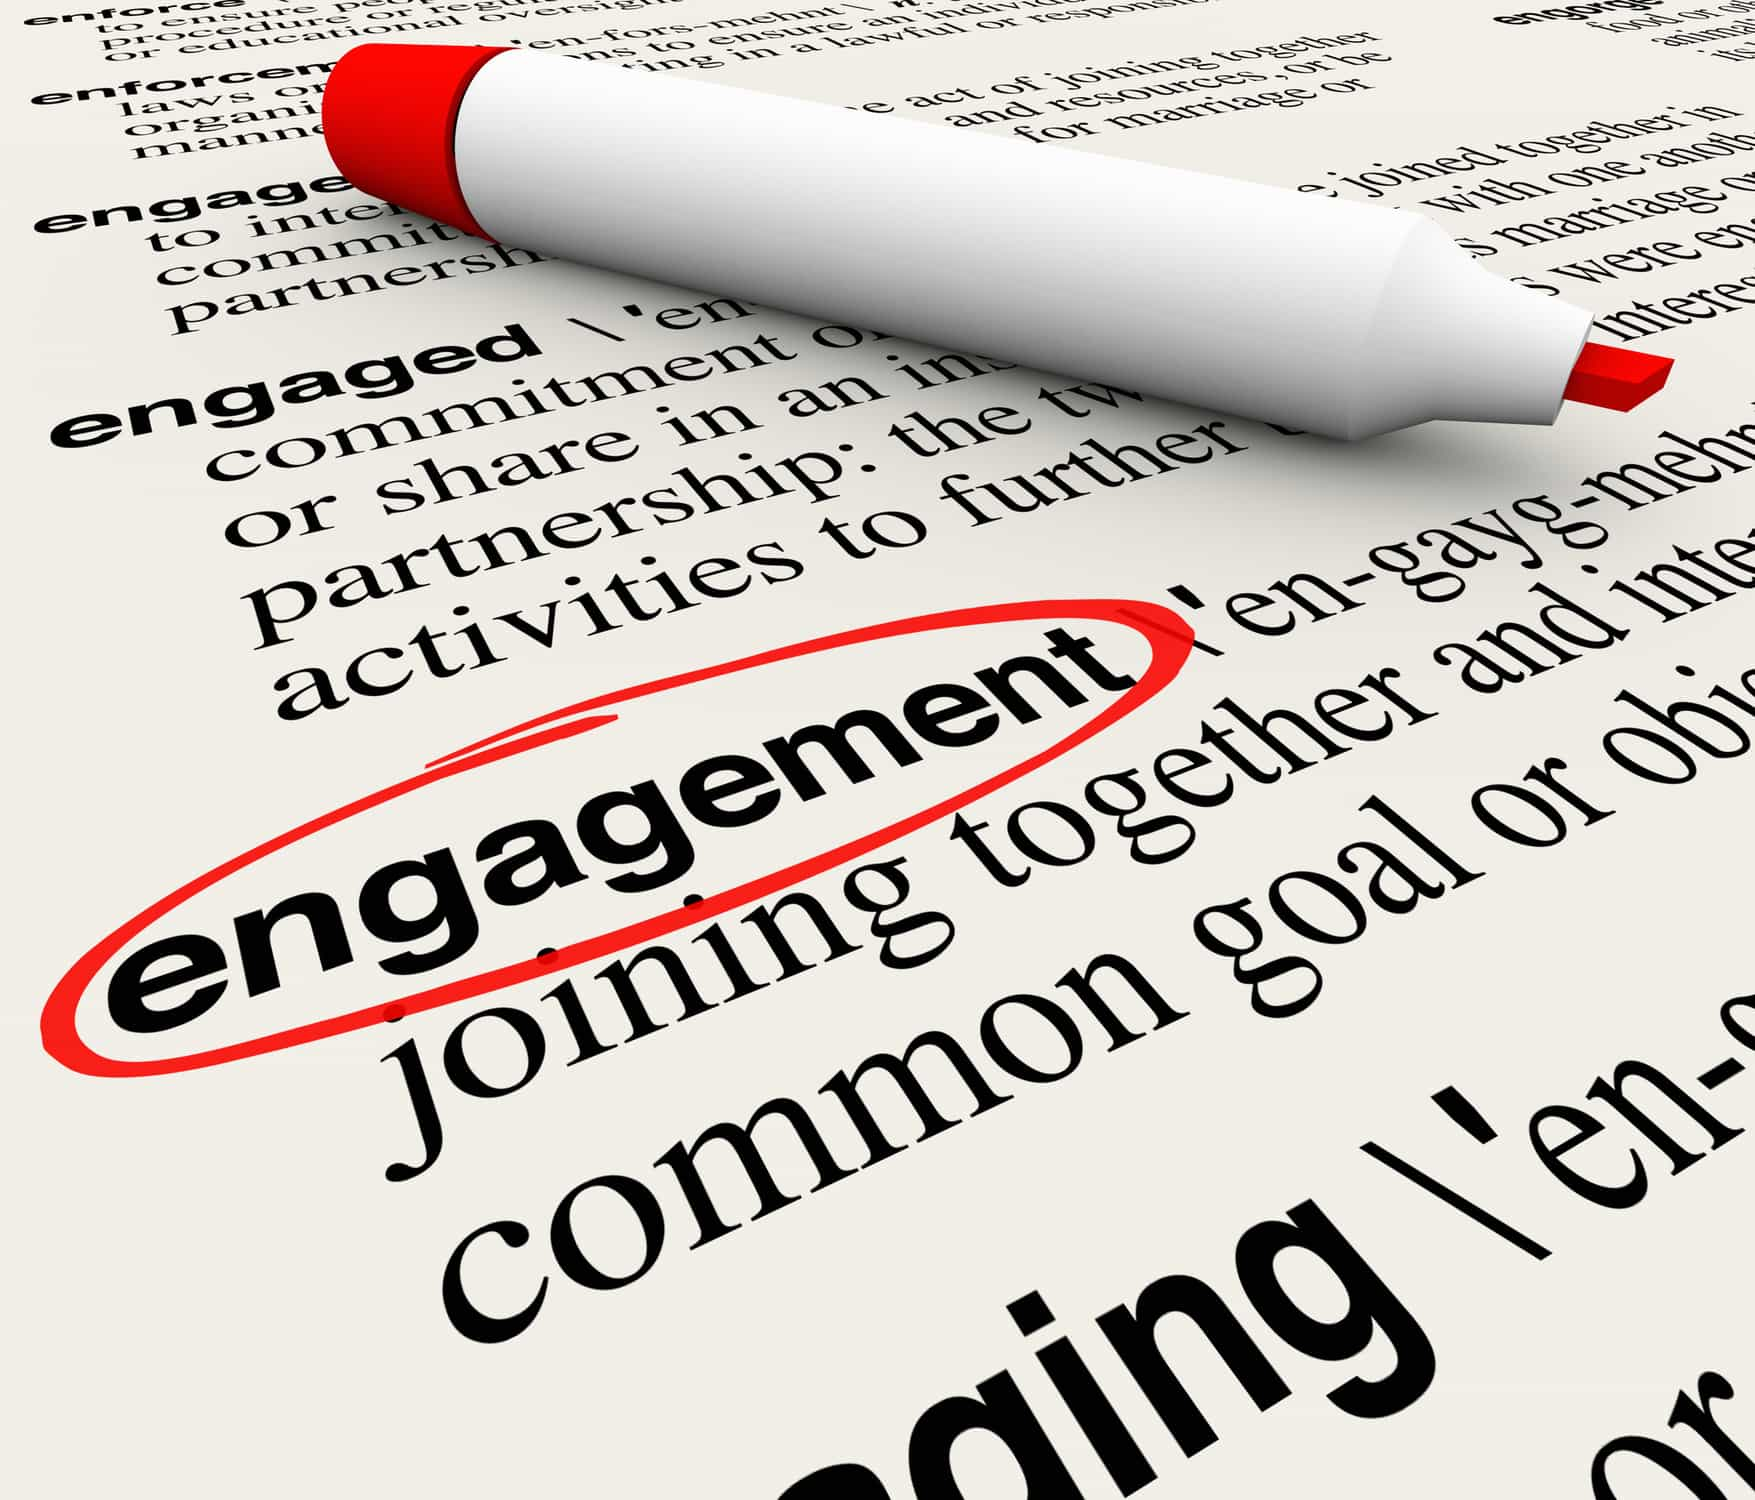 The significance of employee engagement in